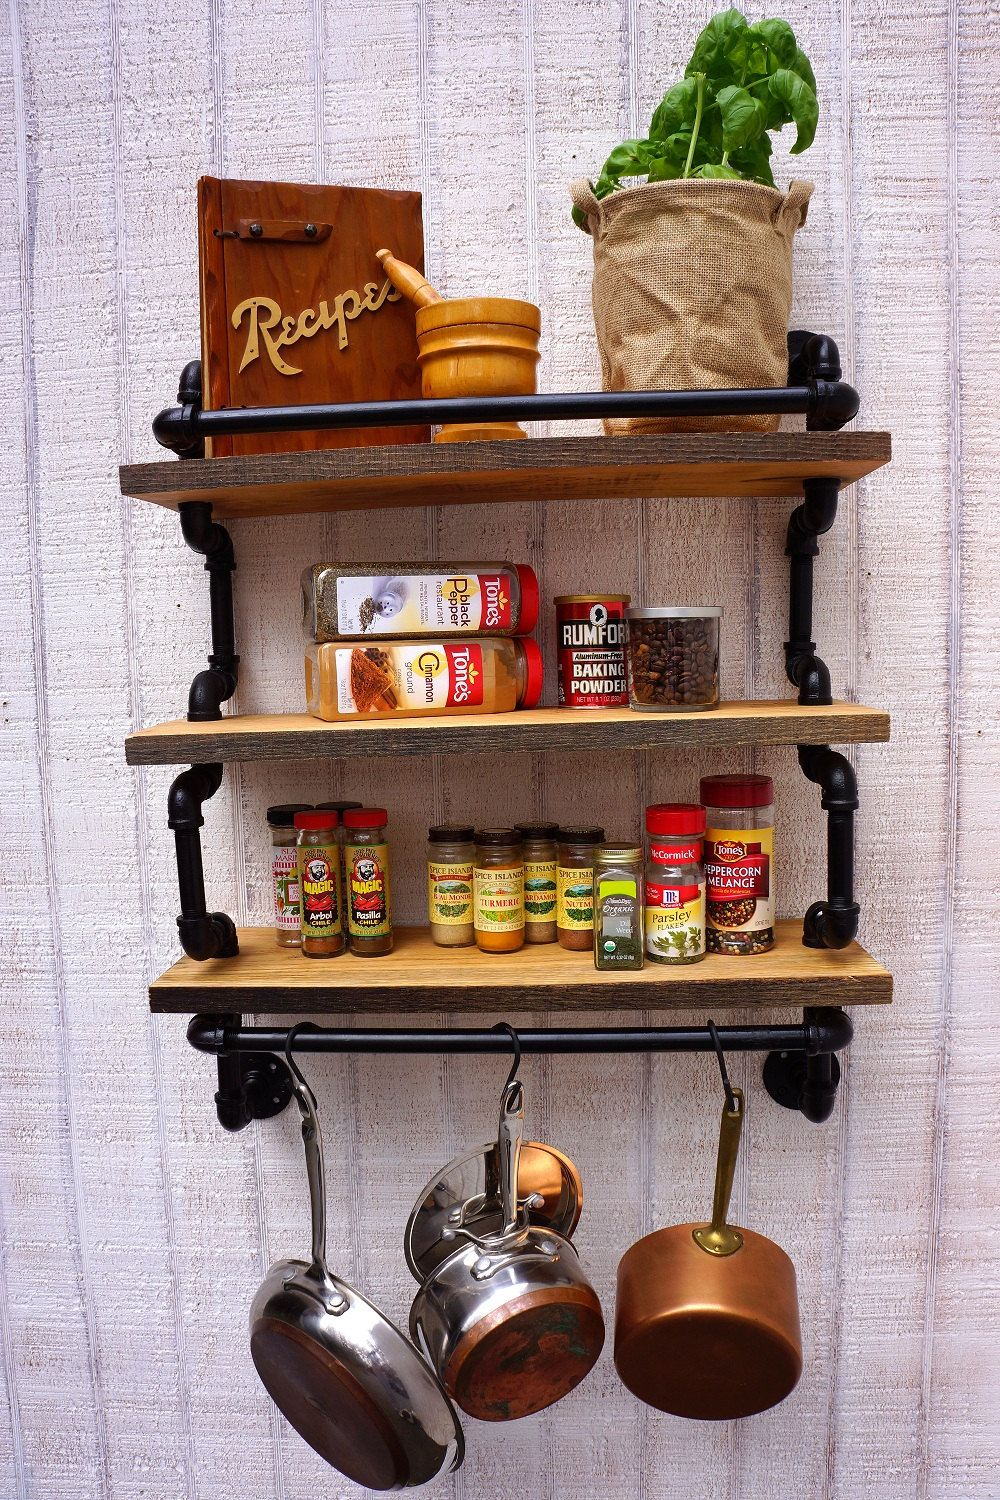 Pin By Tori Relyea On I Can Build That Industrial Decor Kitchen Rustic Industrial Kitchen Industrial Wall Decor